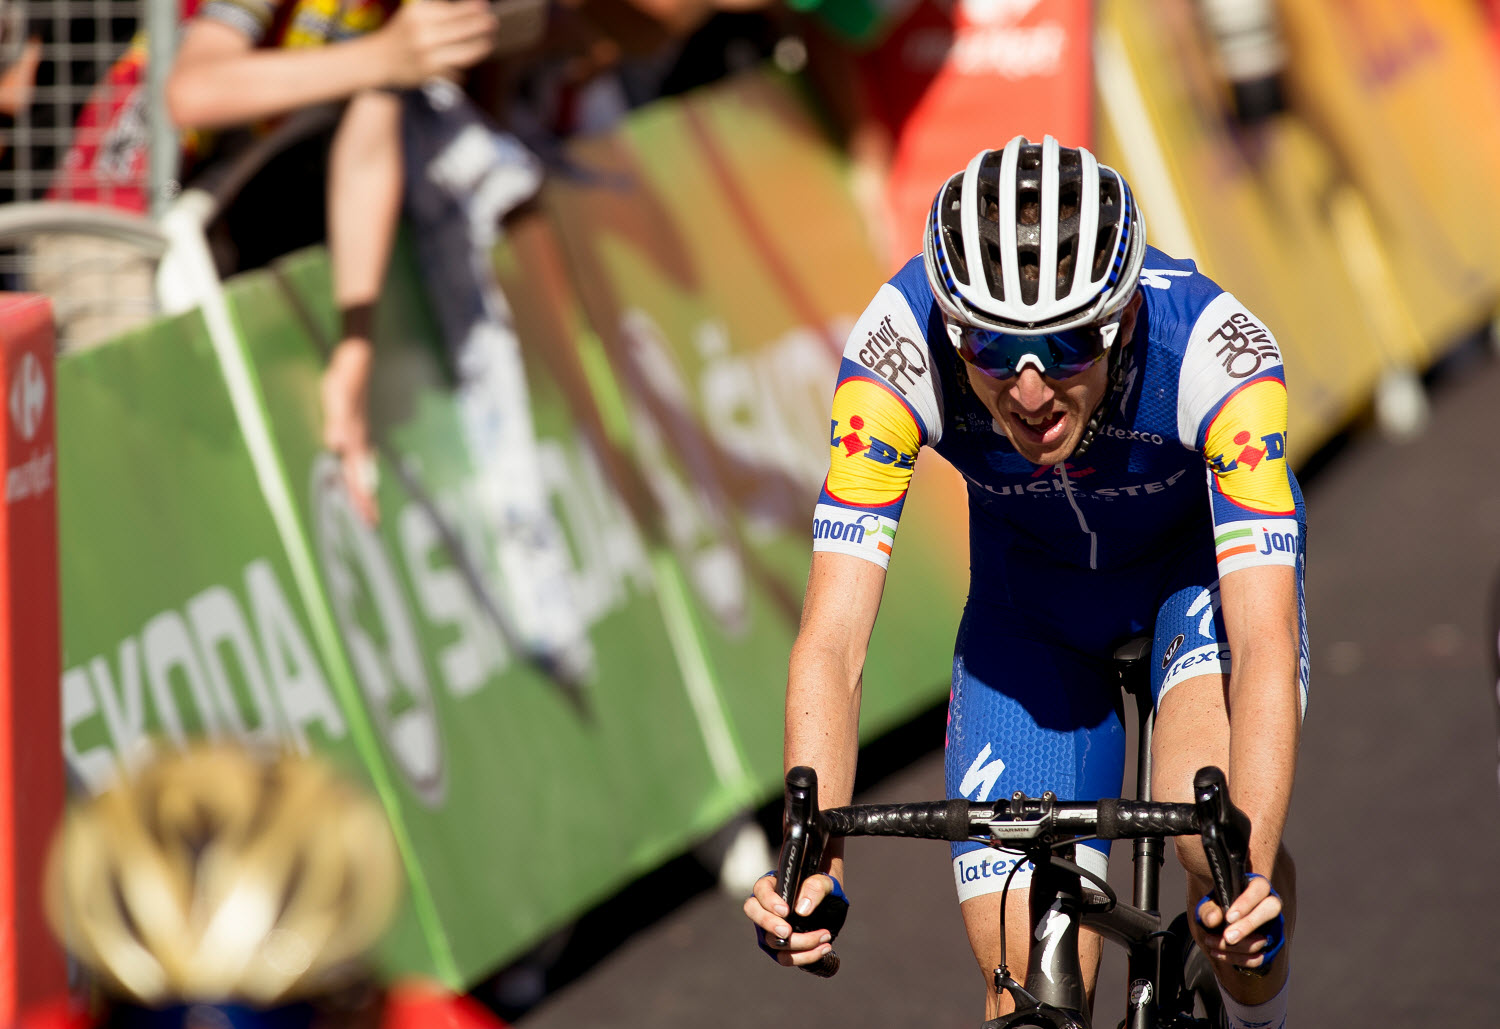 Dan martin team quick step floors at the 2017 tour de france